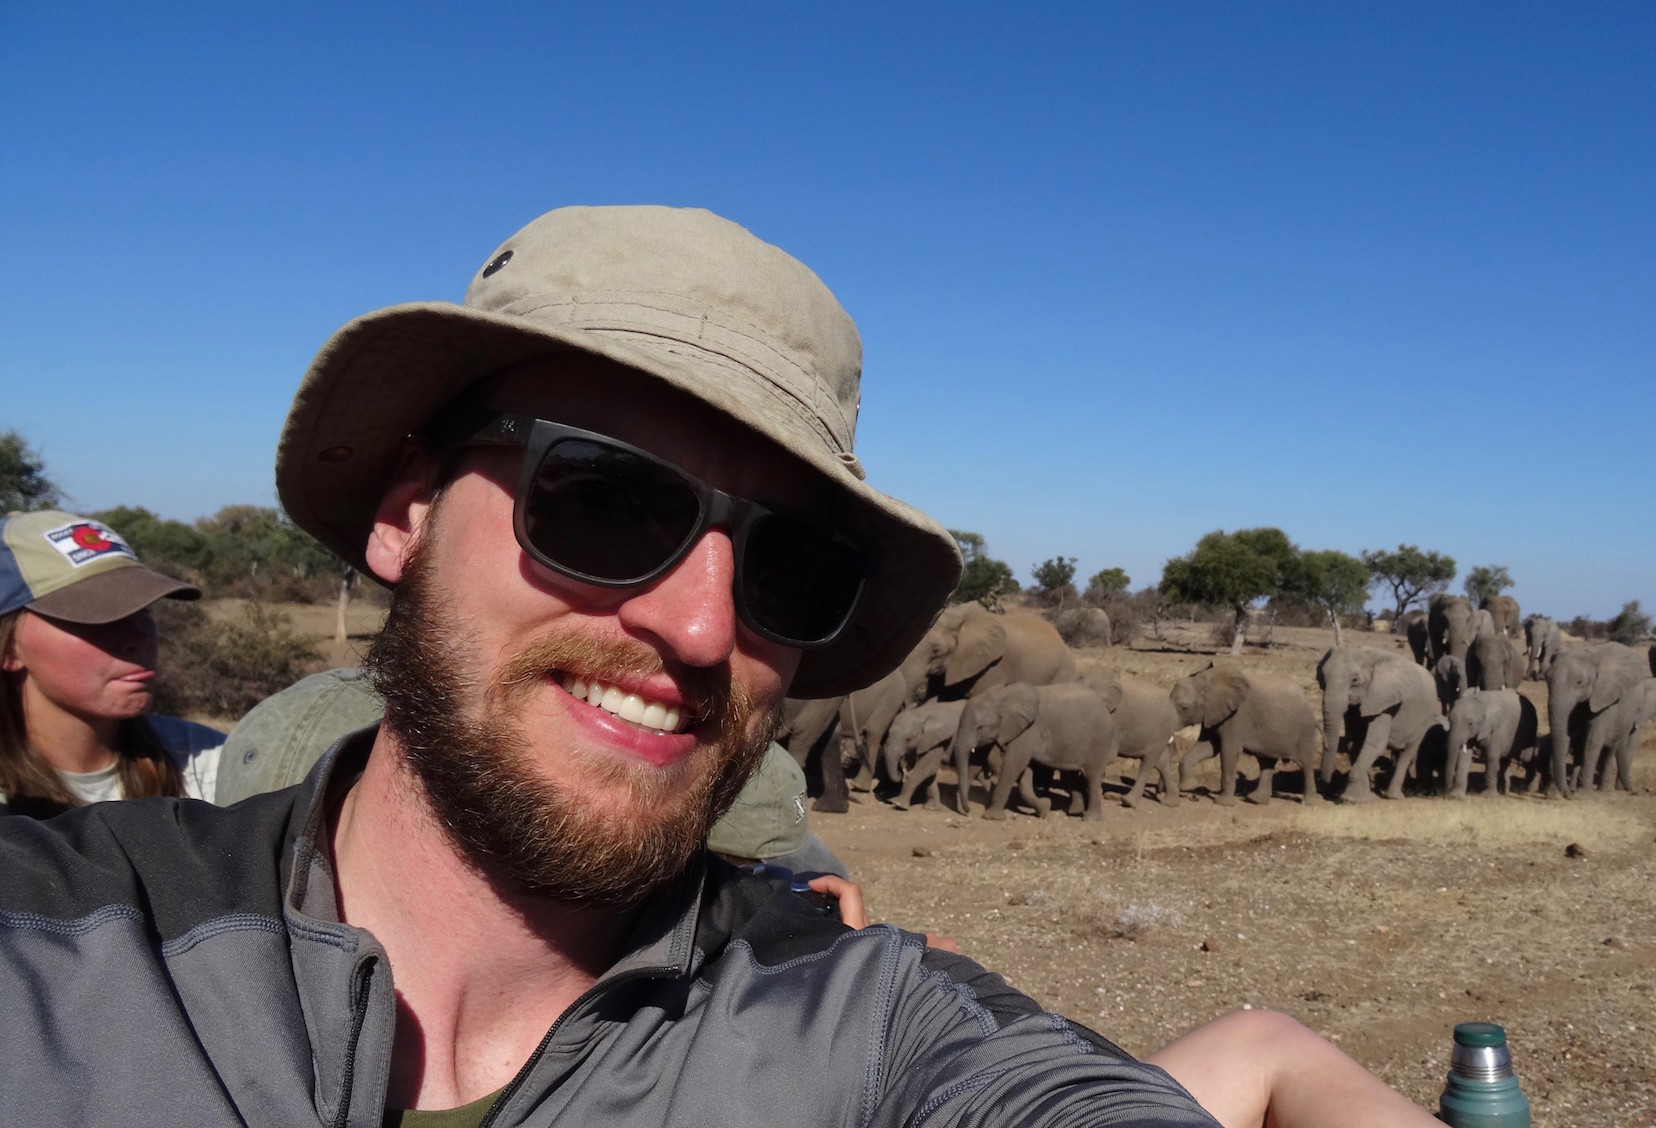 Curt Vandenberg, SNR fisheries and wildlife major, used scholarships to fund his study abroad trip. | Courtesy photo